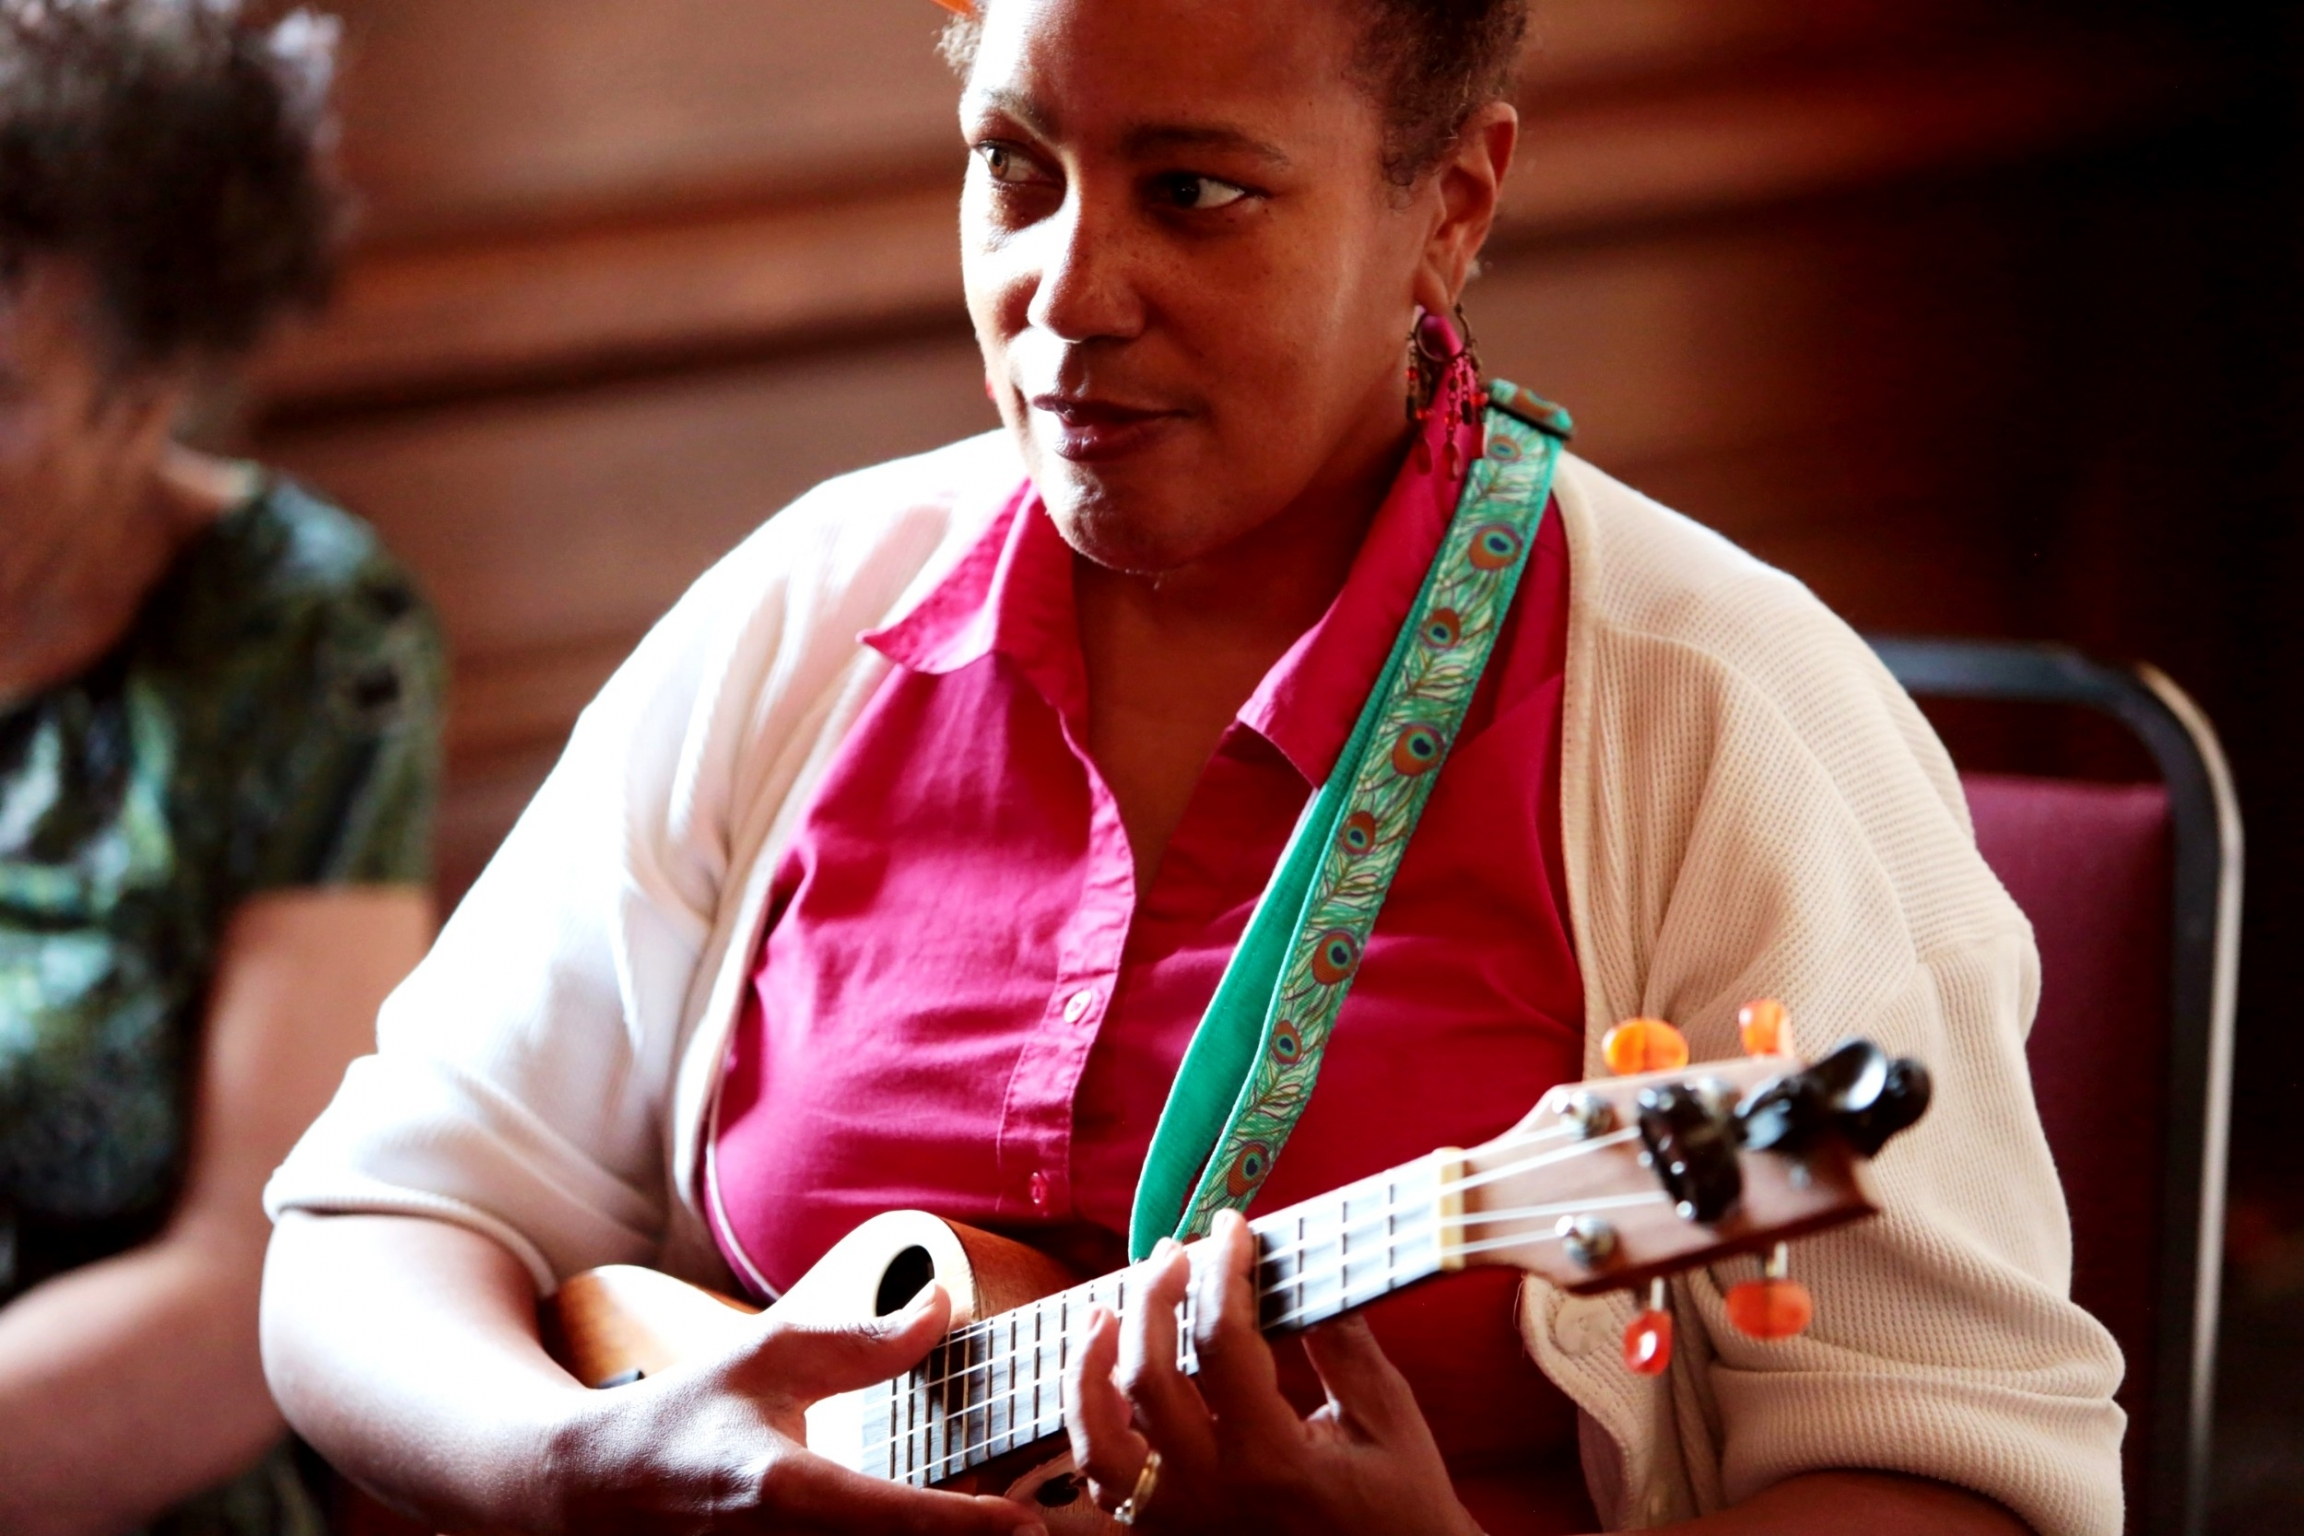 Maryland ukulele player Lori Perine, who has been attending UkeFest for about 8 years.